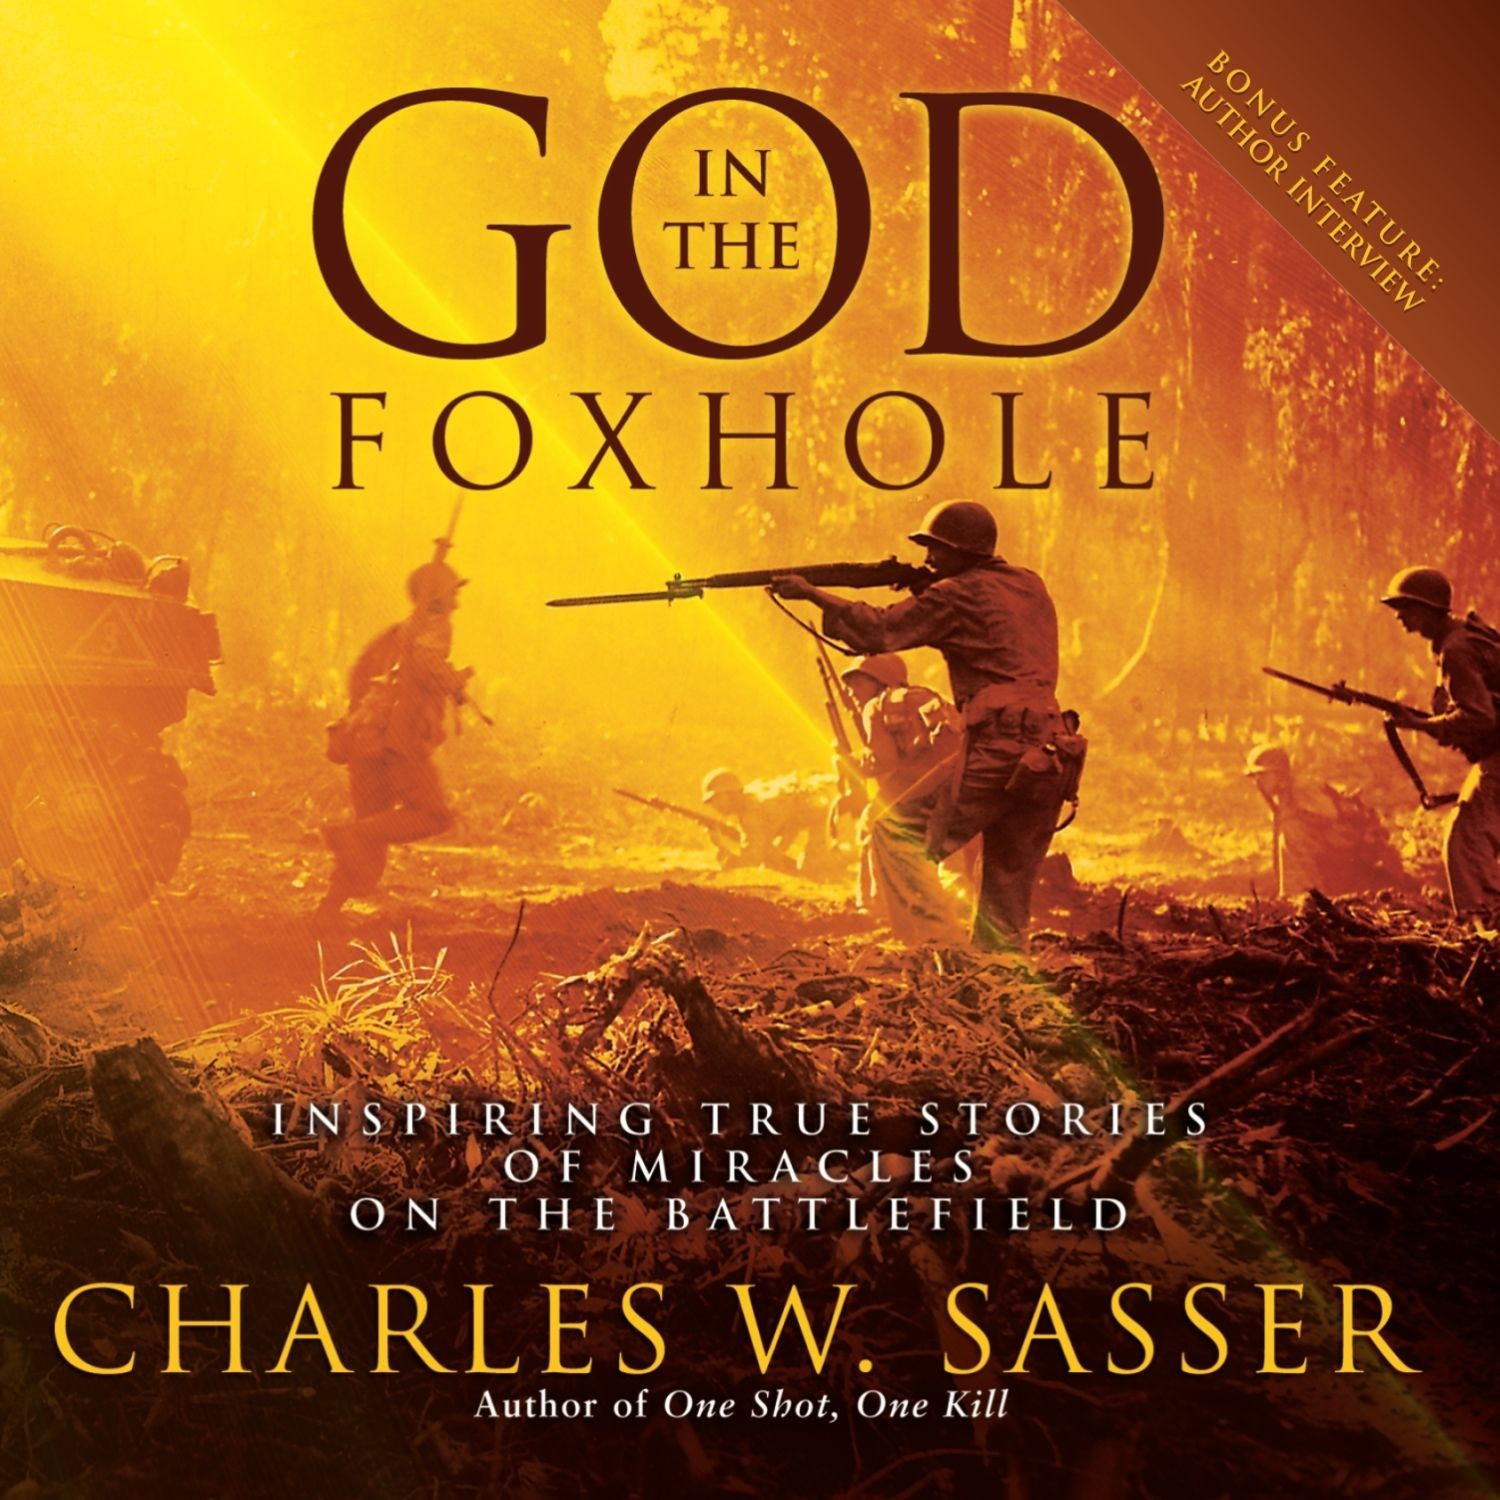 Printable God in the Foxhole: Inspiring True Stories of Miracles on the Battlefield Audiobook Cover Art